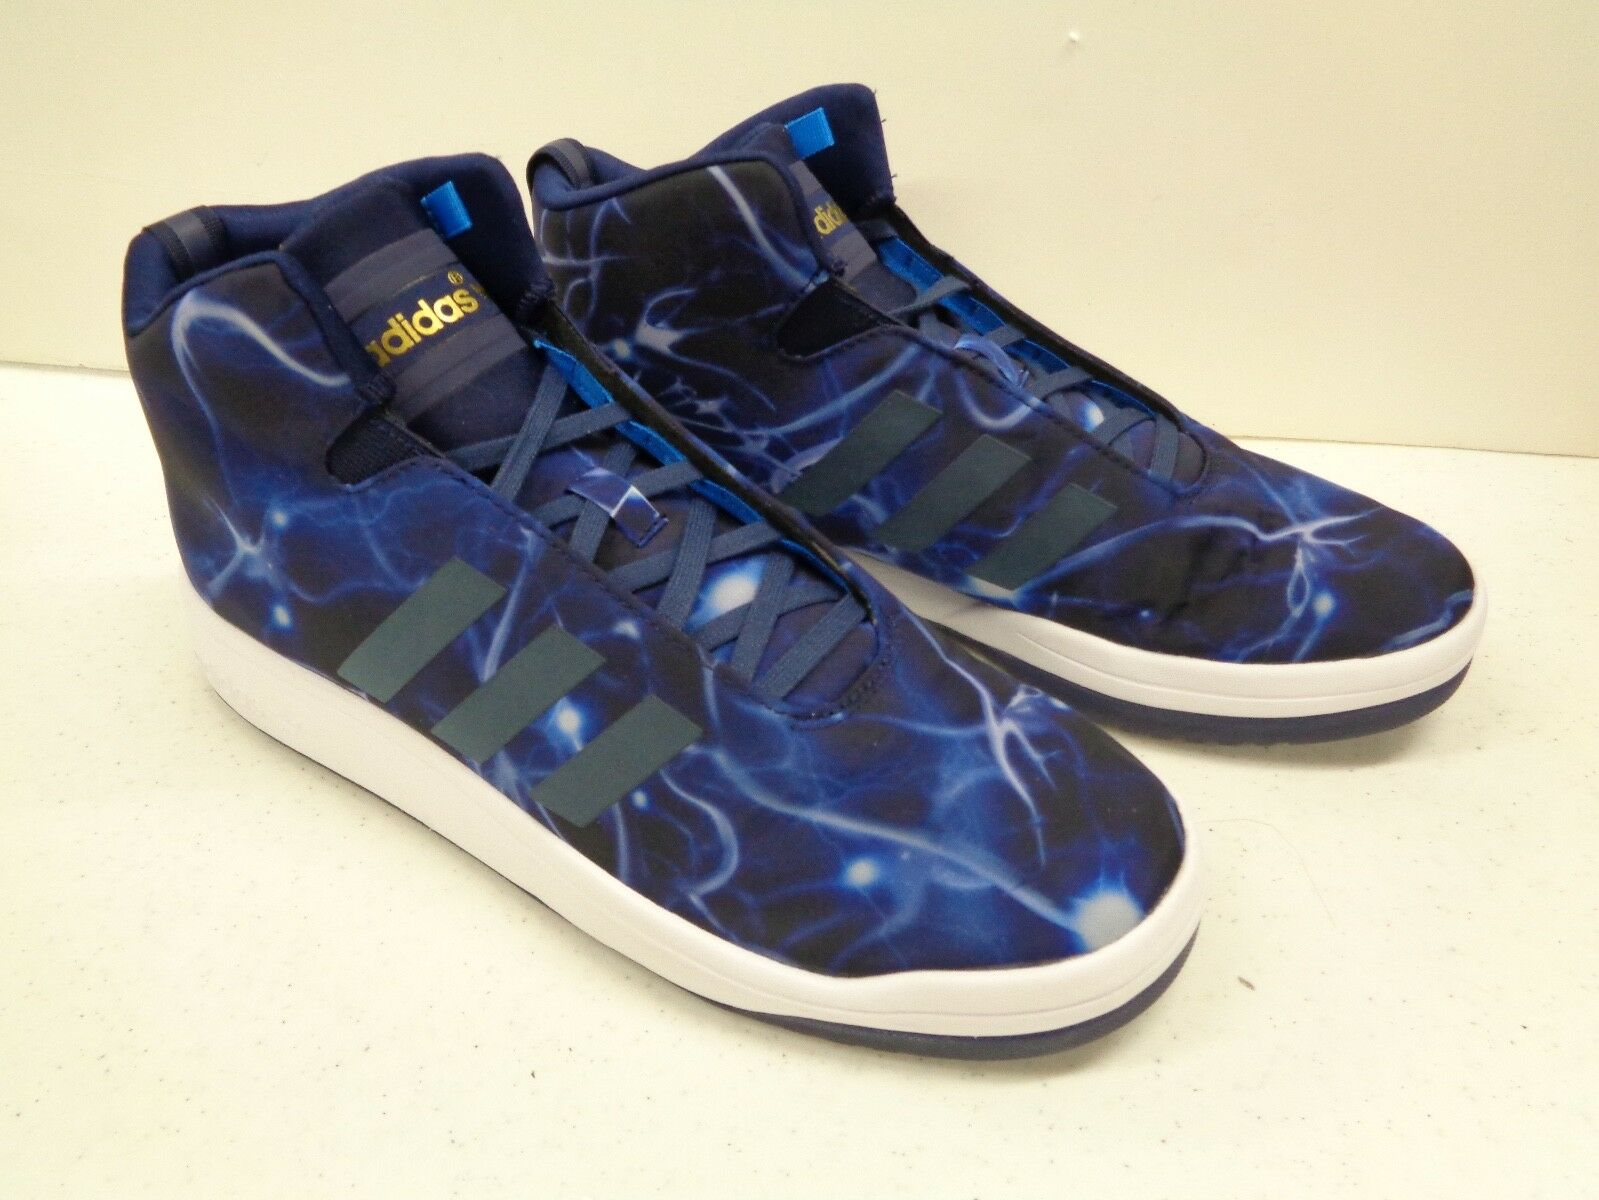 Adidas Fit Foam Mens Sneakers Athletic shoes bluee Galaxy Sz 8-1 2 Worn 1x 8.5